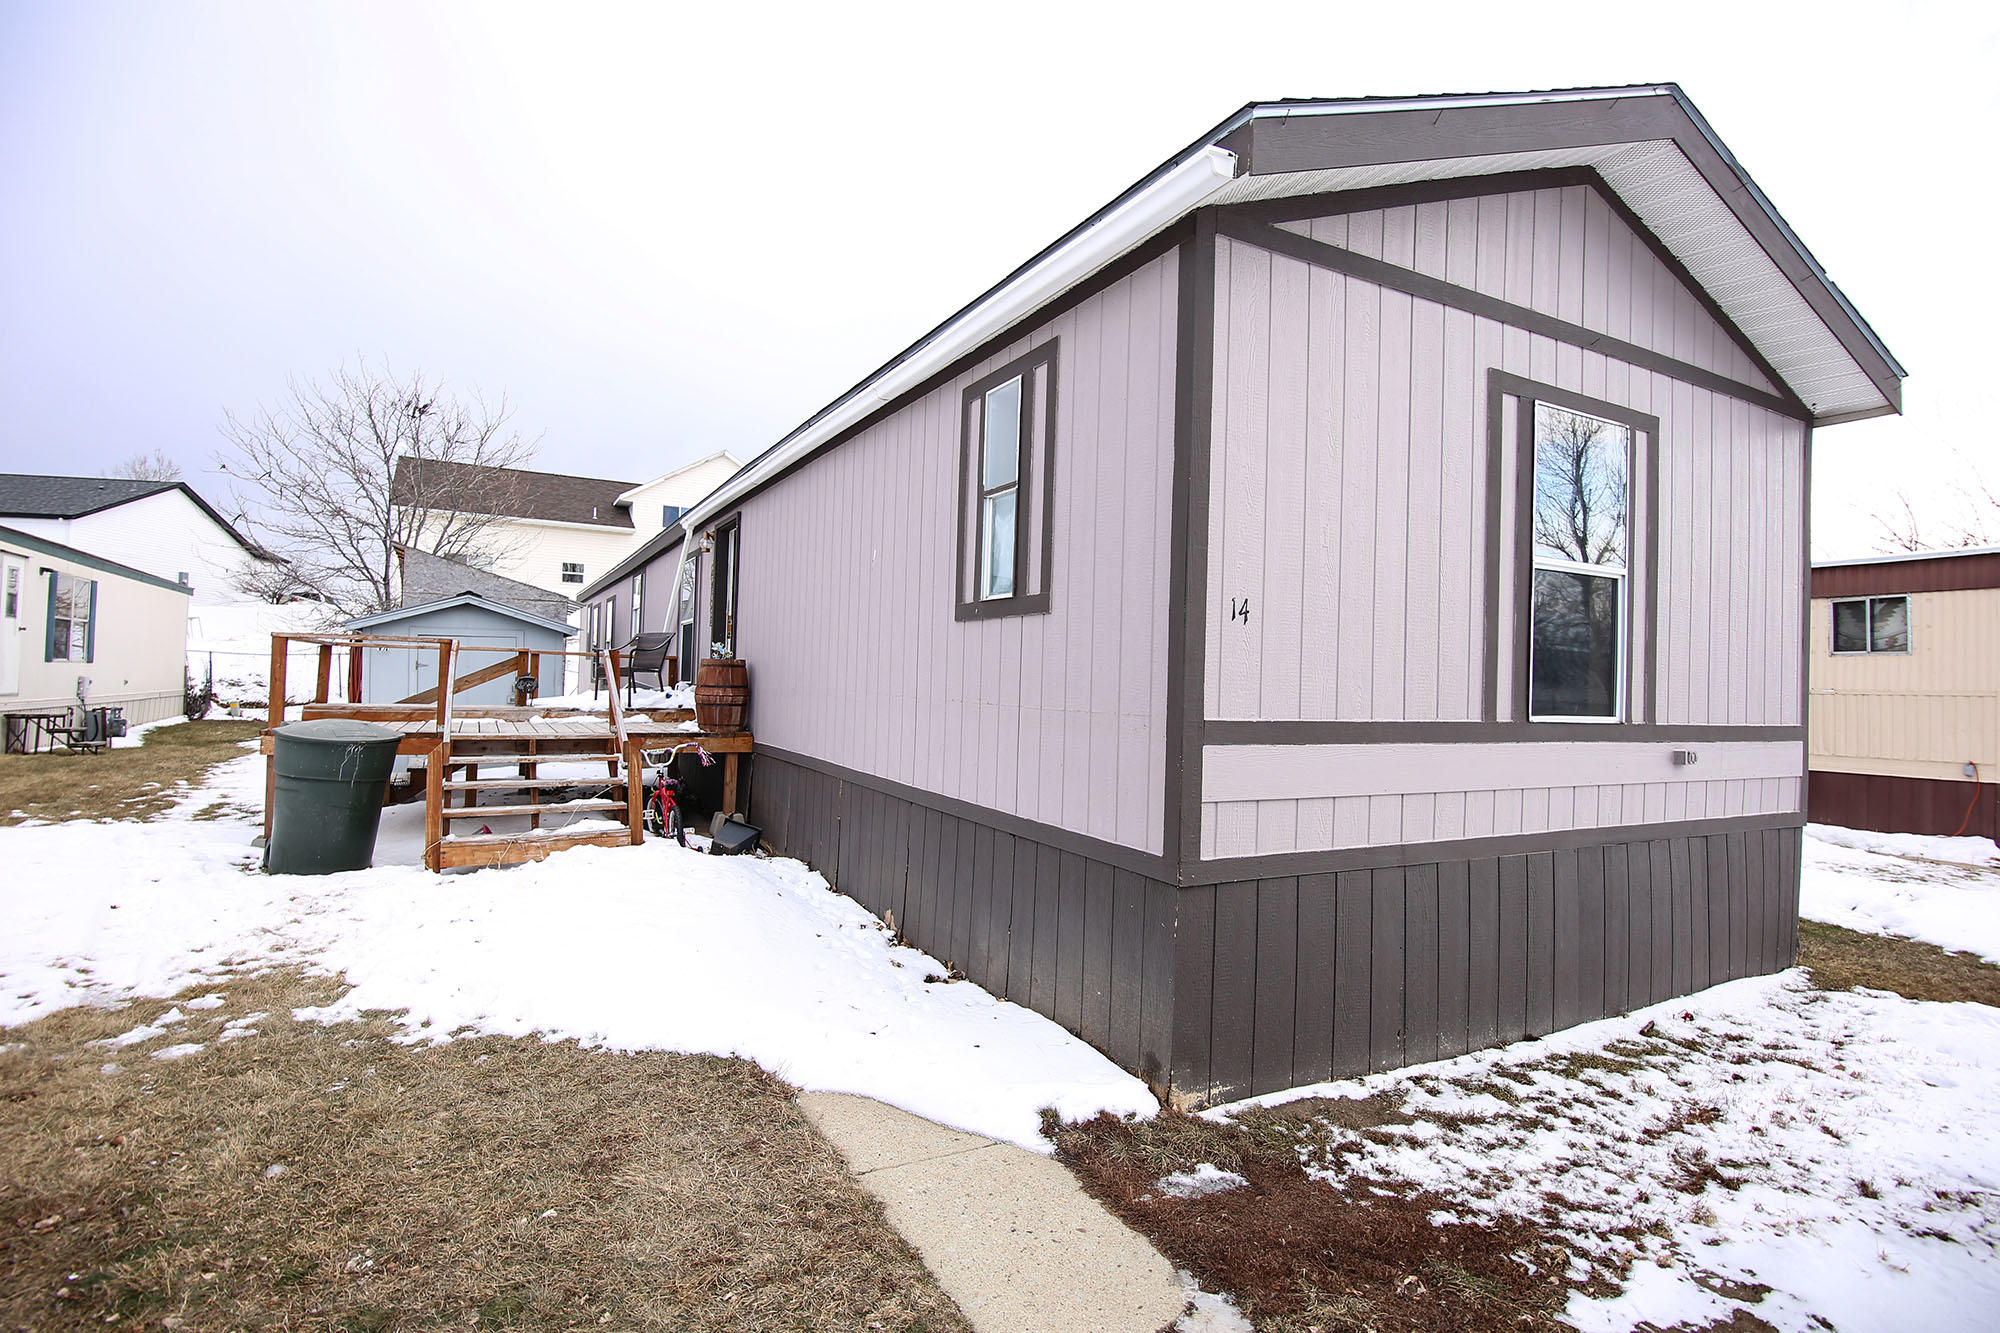 1511 Mydland Road, Sheridan, Wyoming 82801, 3 Bedrooms Bedrooms, ,2 BathroomsBathrooms,Residential,For Sale,Mydland,19-40